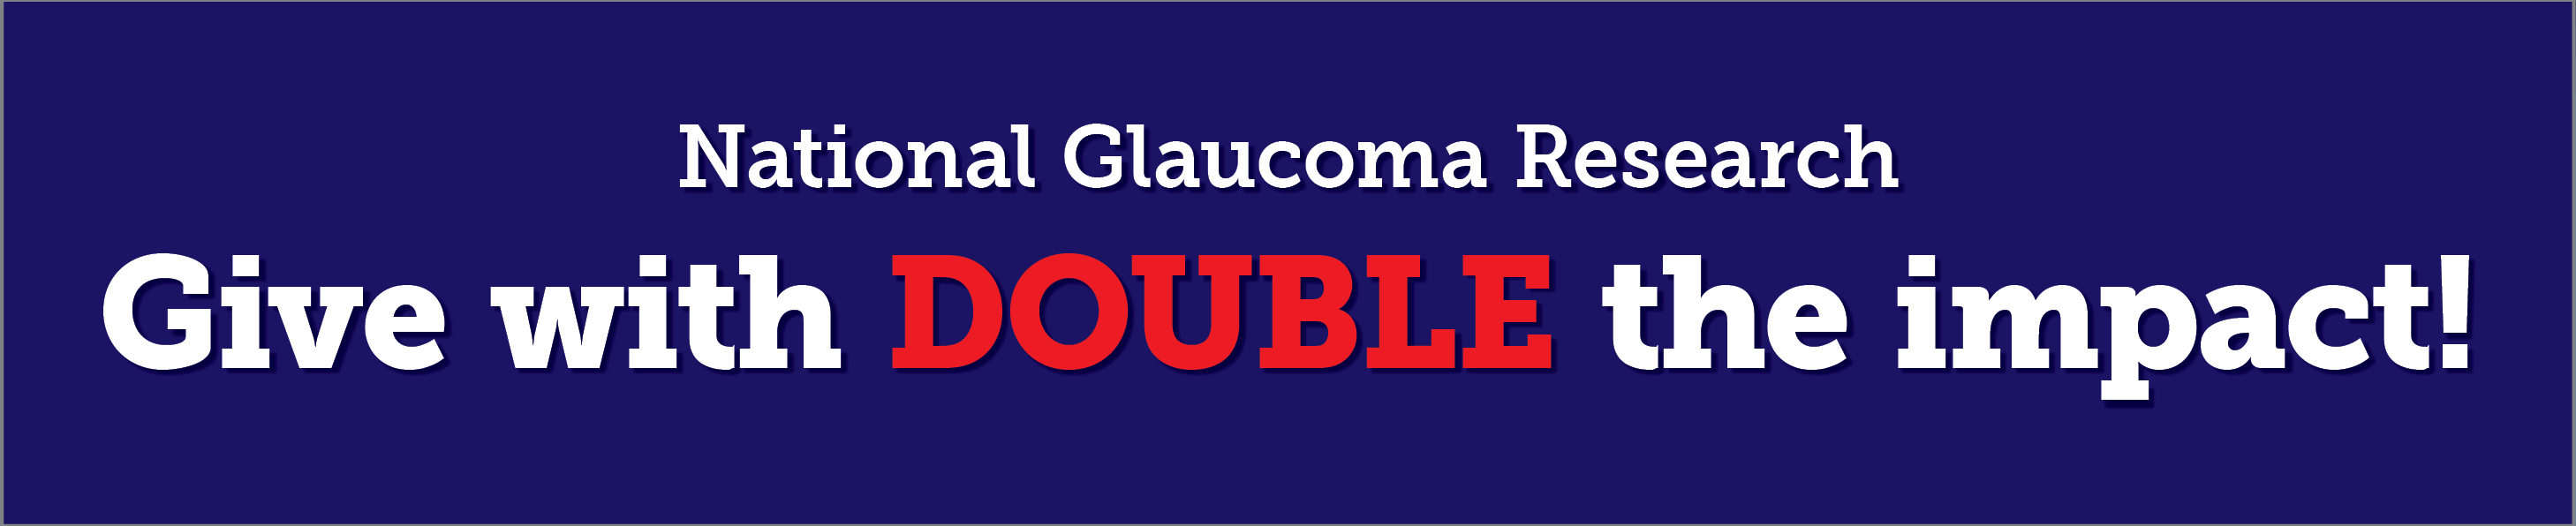 National Glaucoma Research Give with DOUBLE the Impact!